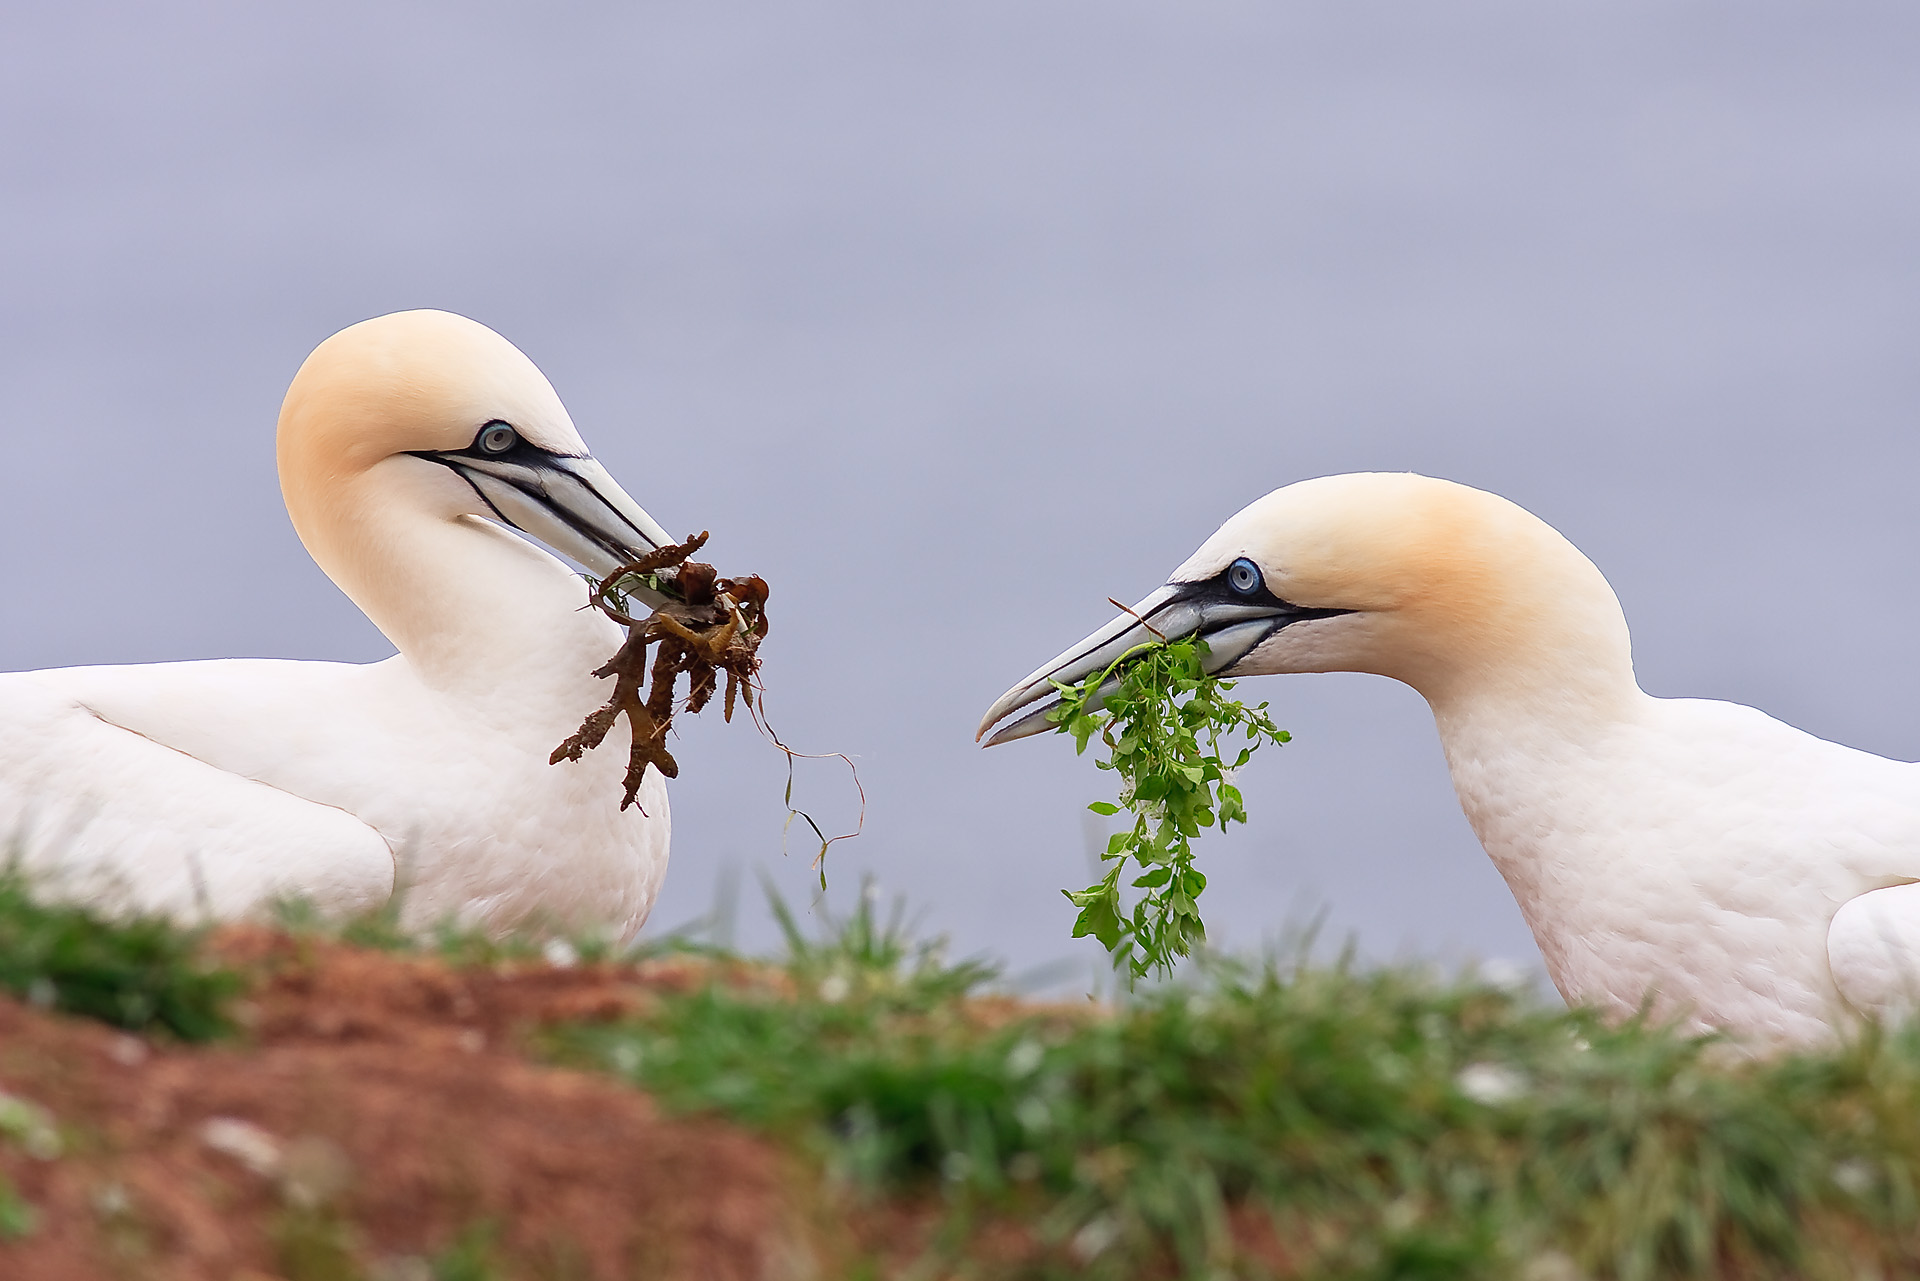 Northern Gannet Colonies on Bonaventure Island, Canada